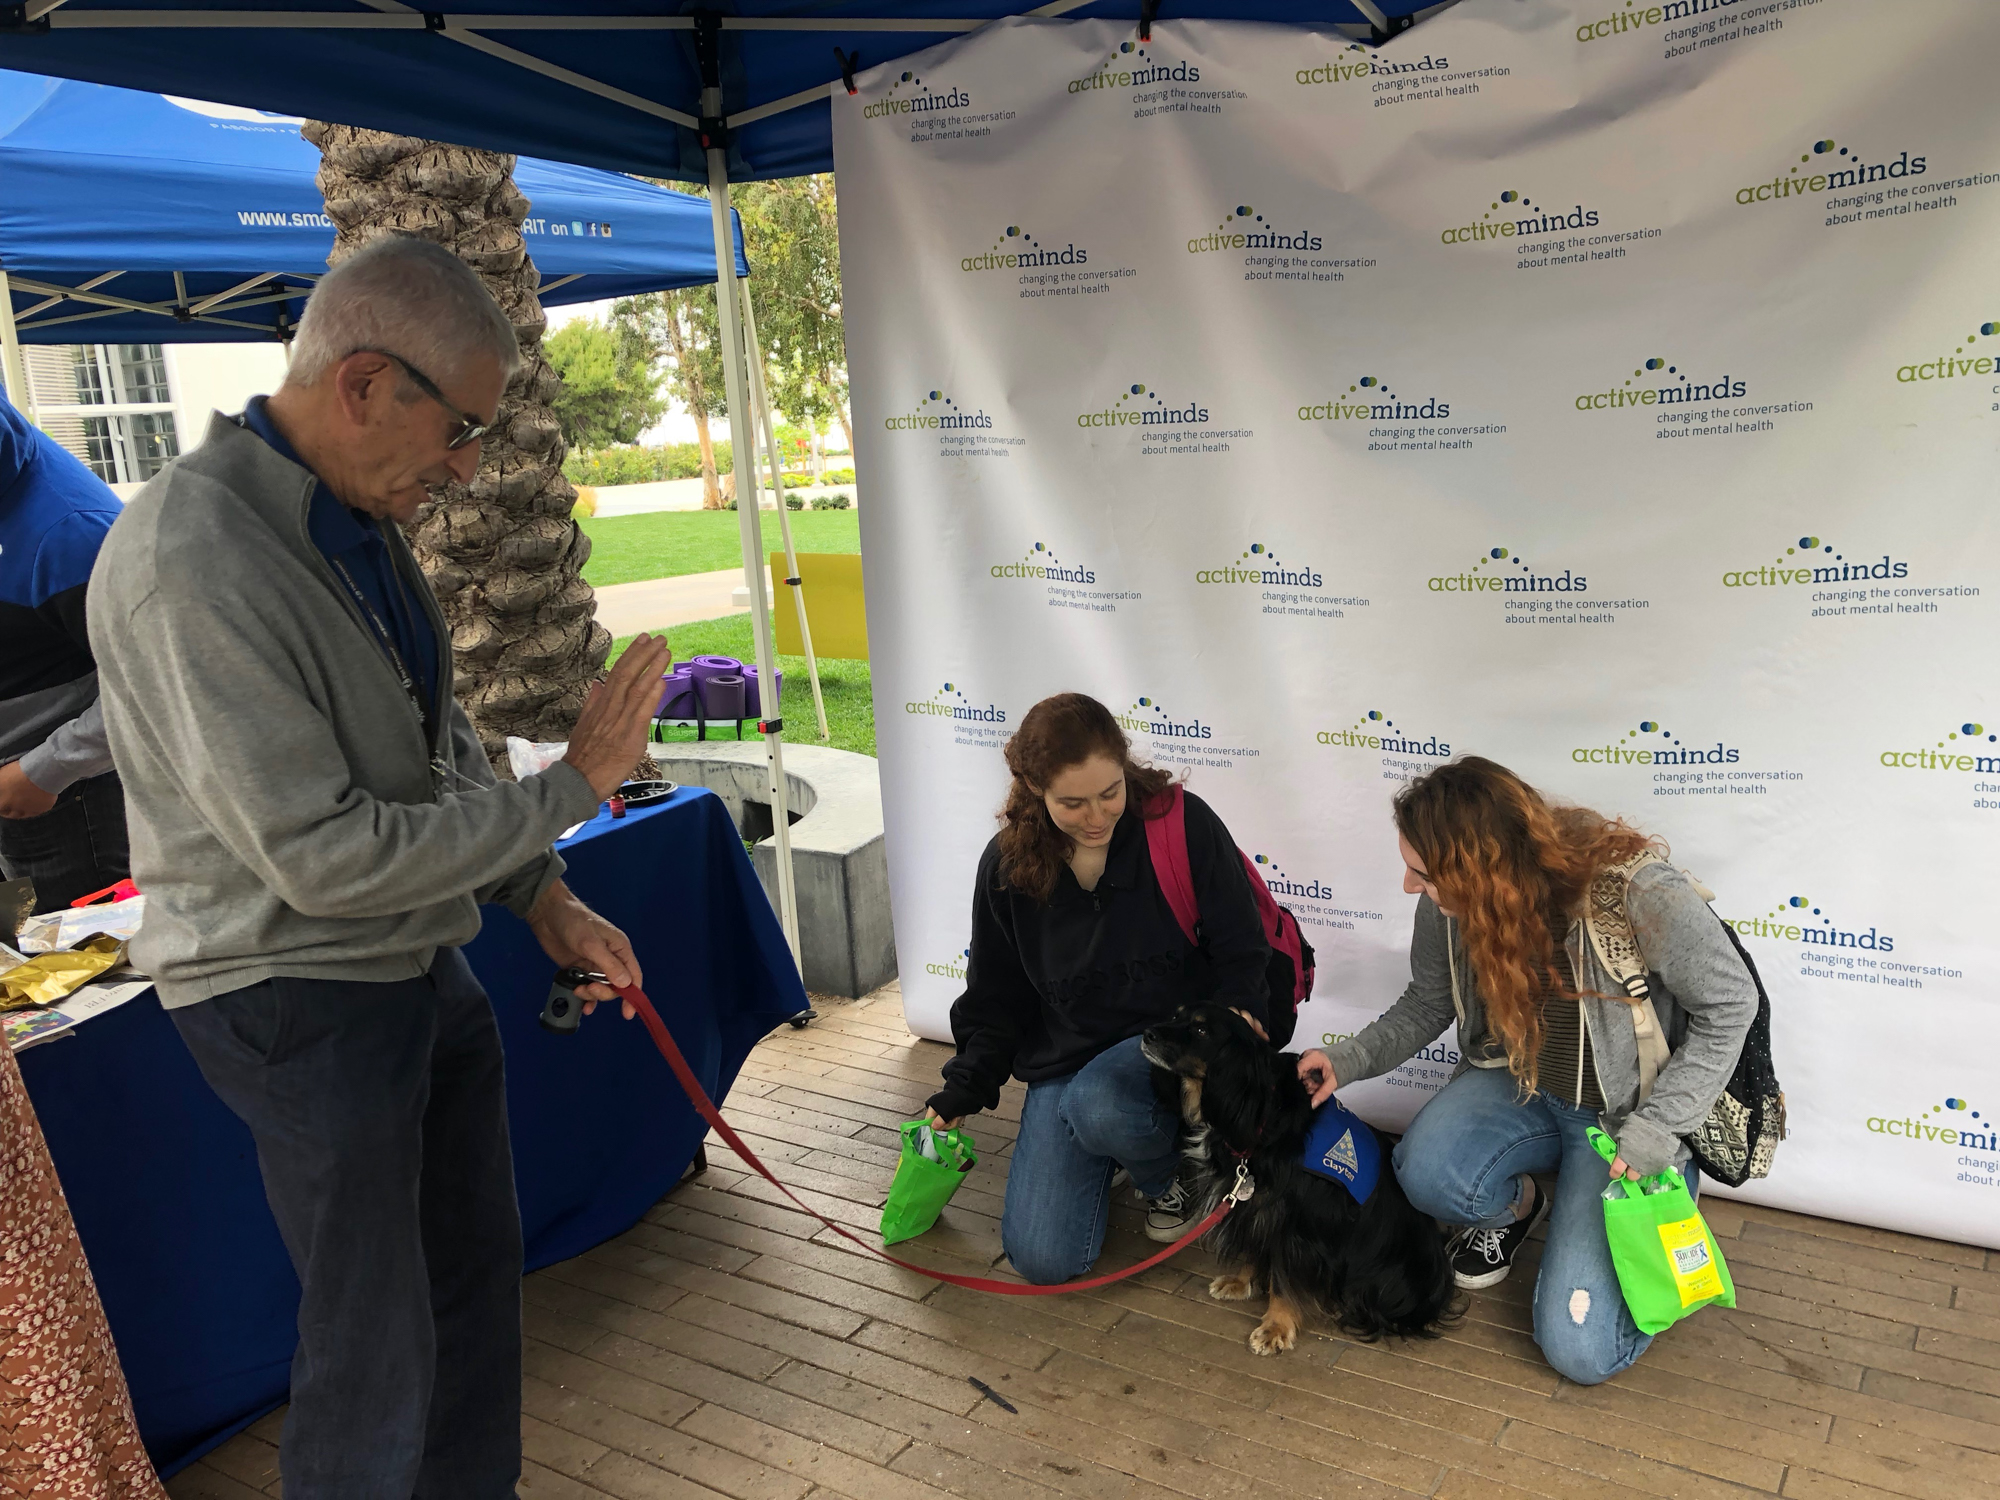 Bob Cowan with Paws for healing brought along dog Clayton to say hello at Active Minds event on Thursday May, 24 at Santa Monica College, in Santa Monica, California. Here with students Madeline Samson (left) and Skyler Stark (right). (Jennifer Nystrom/Corsair Photo)